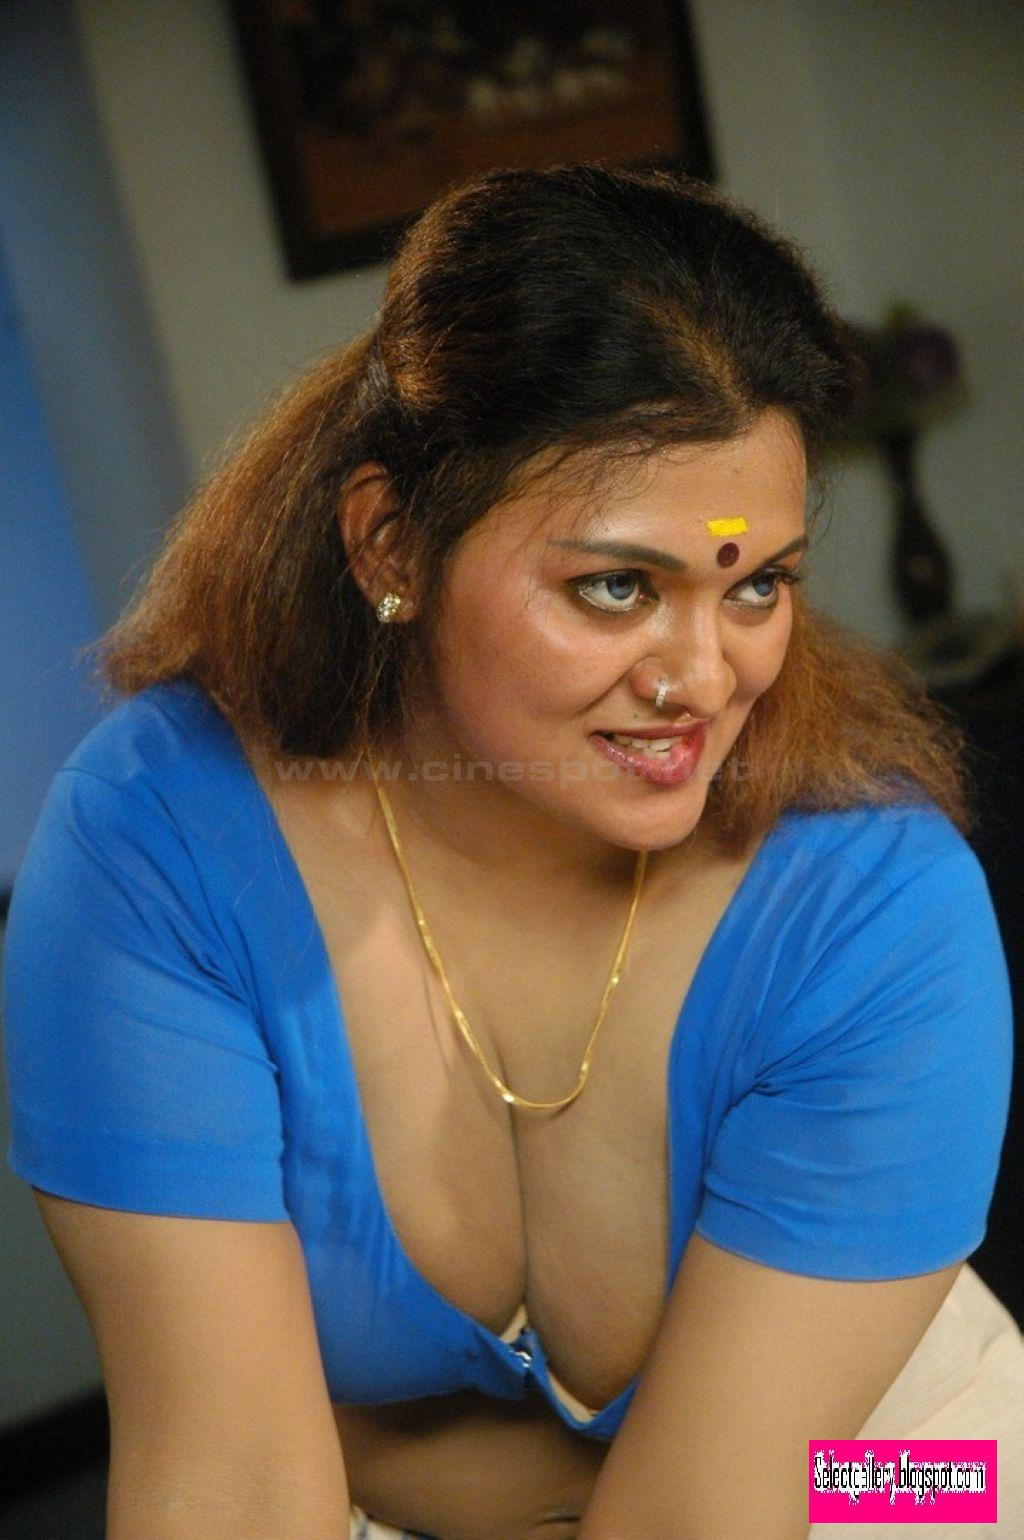 Tamil Actress Exclusive Boobs Showing Latest Photo-4859